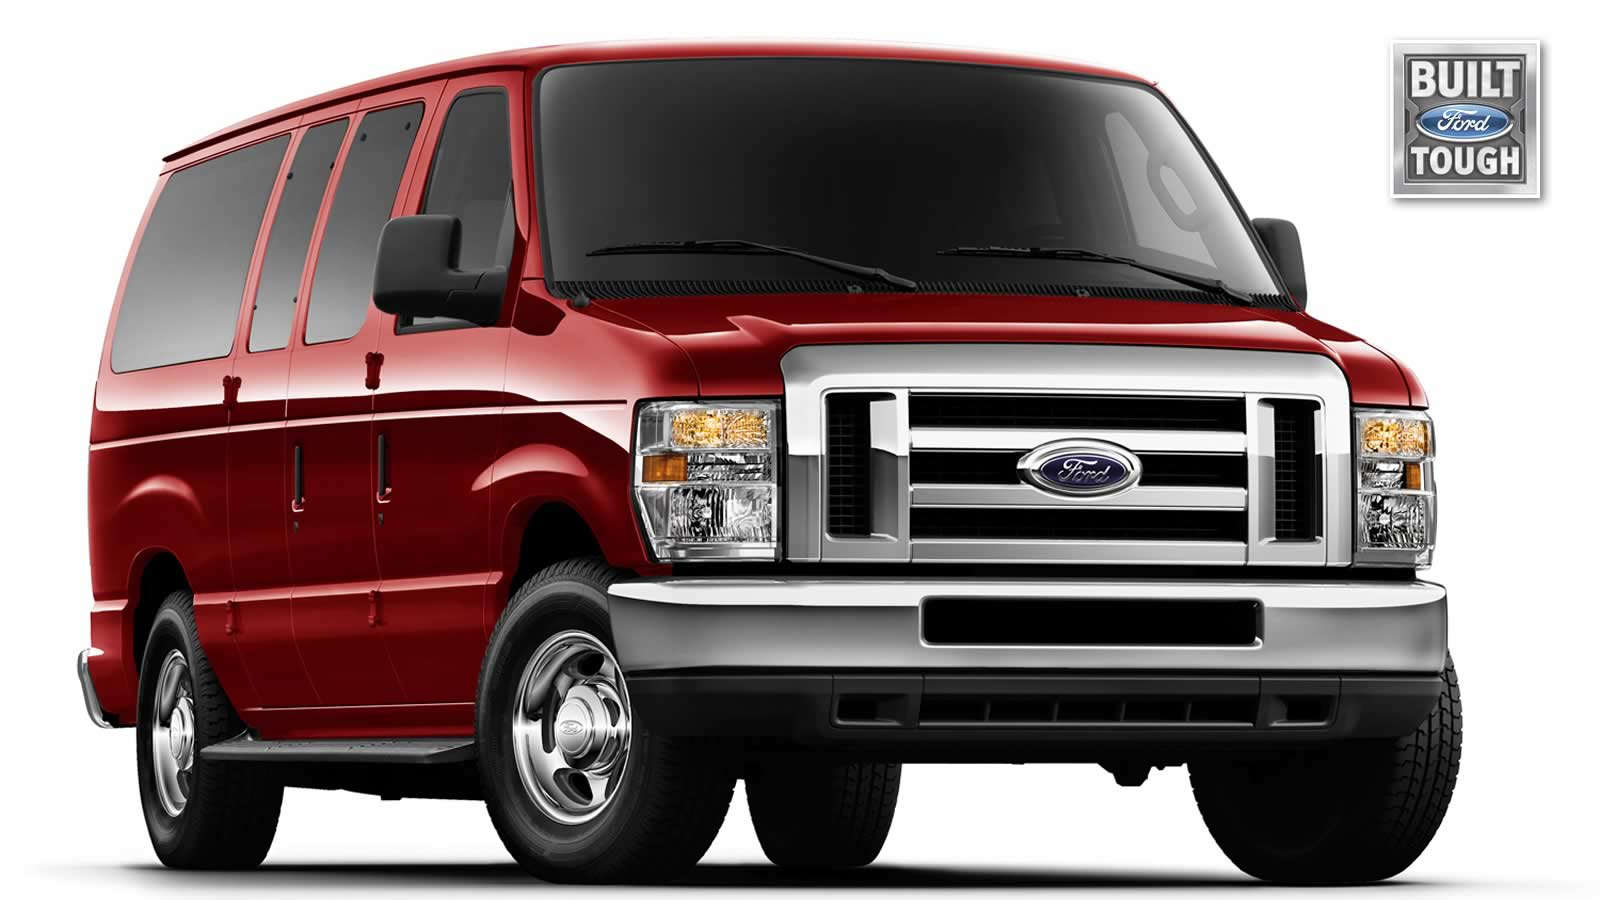 Red ford econoline van with the built ford tough logo